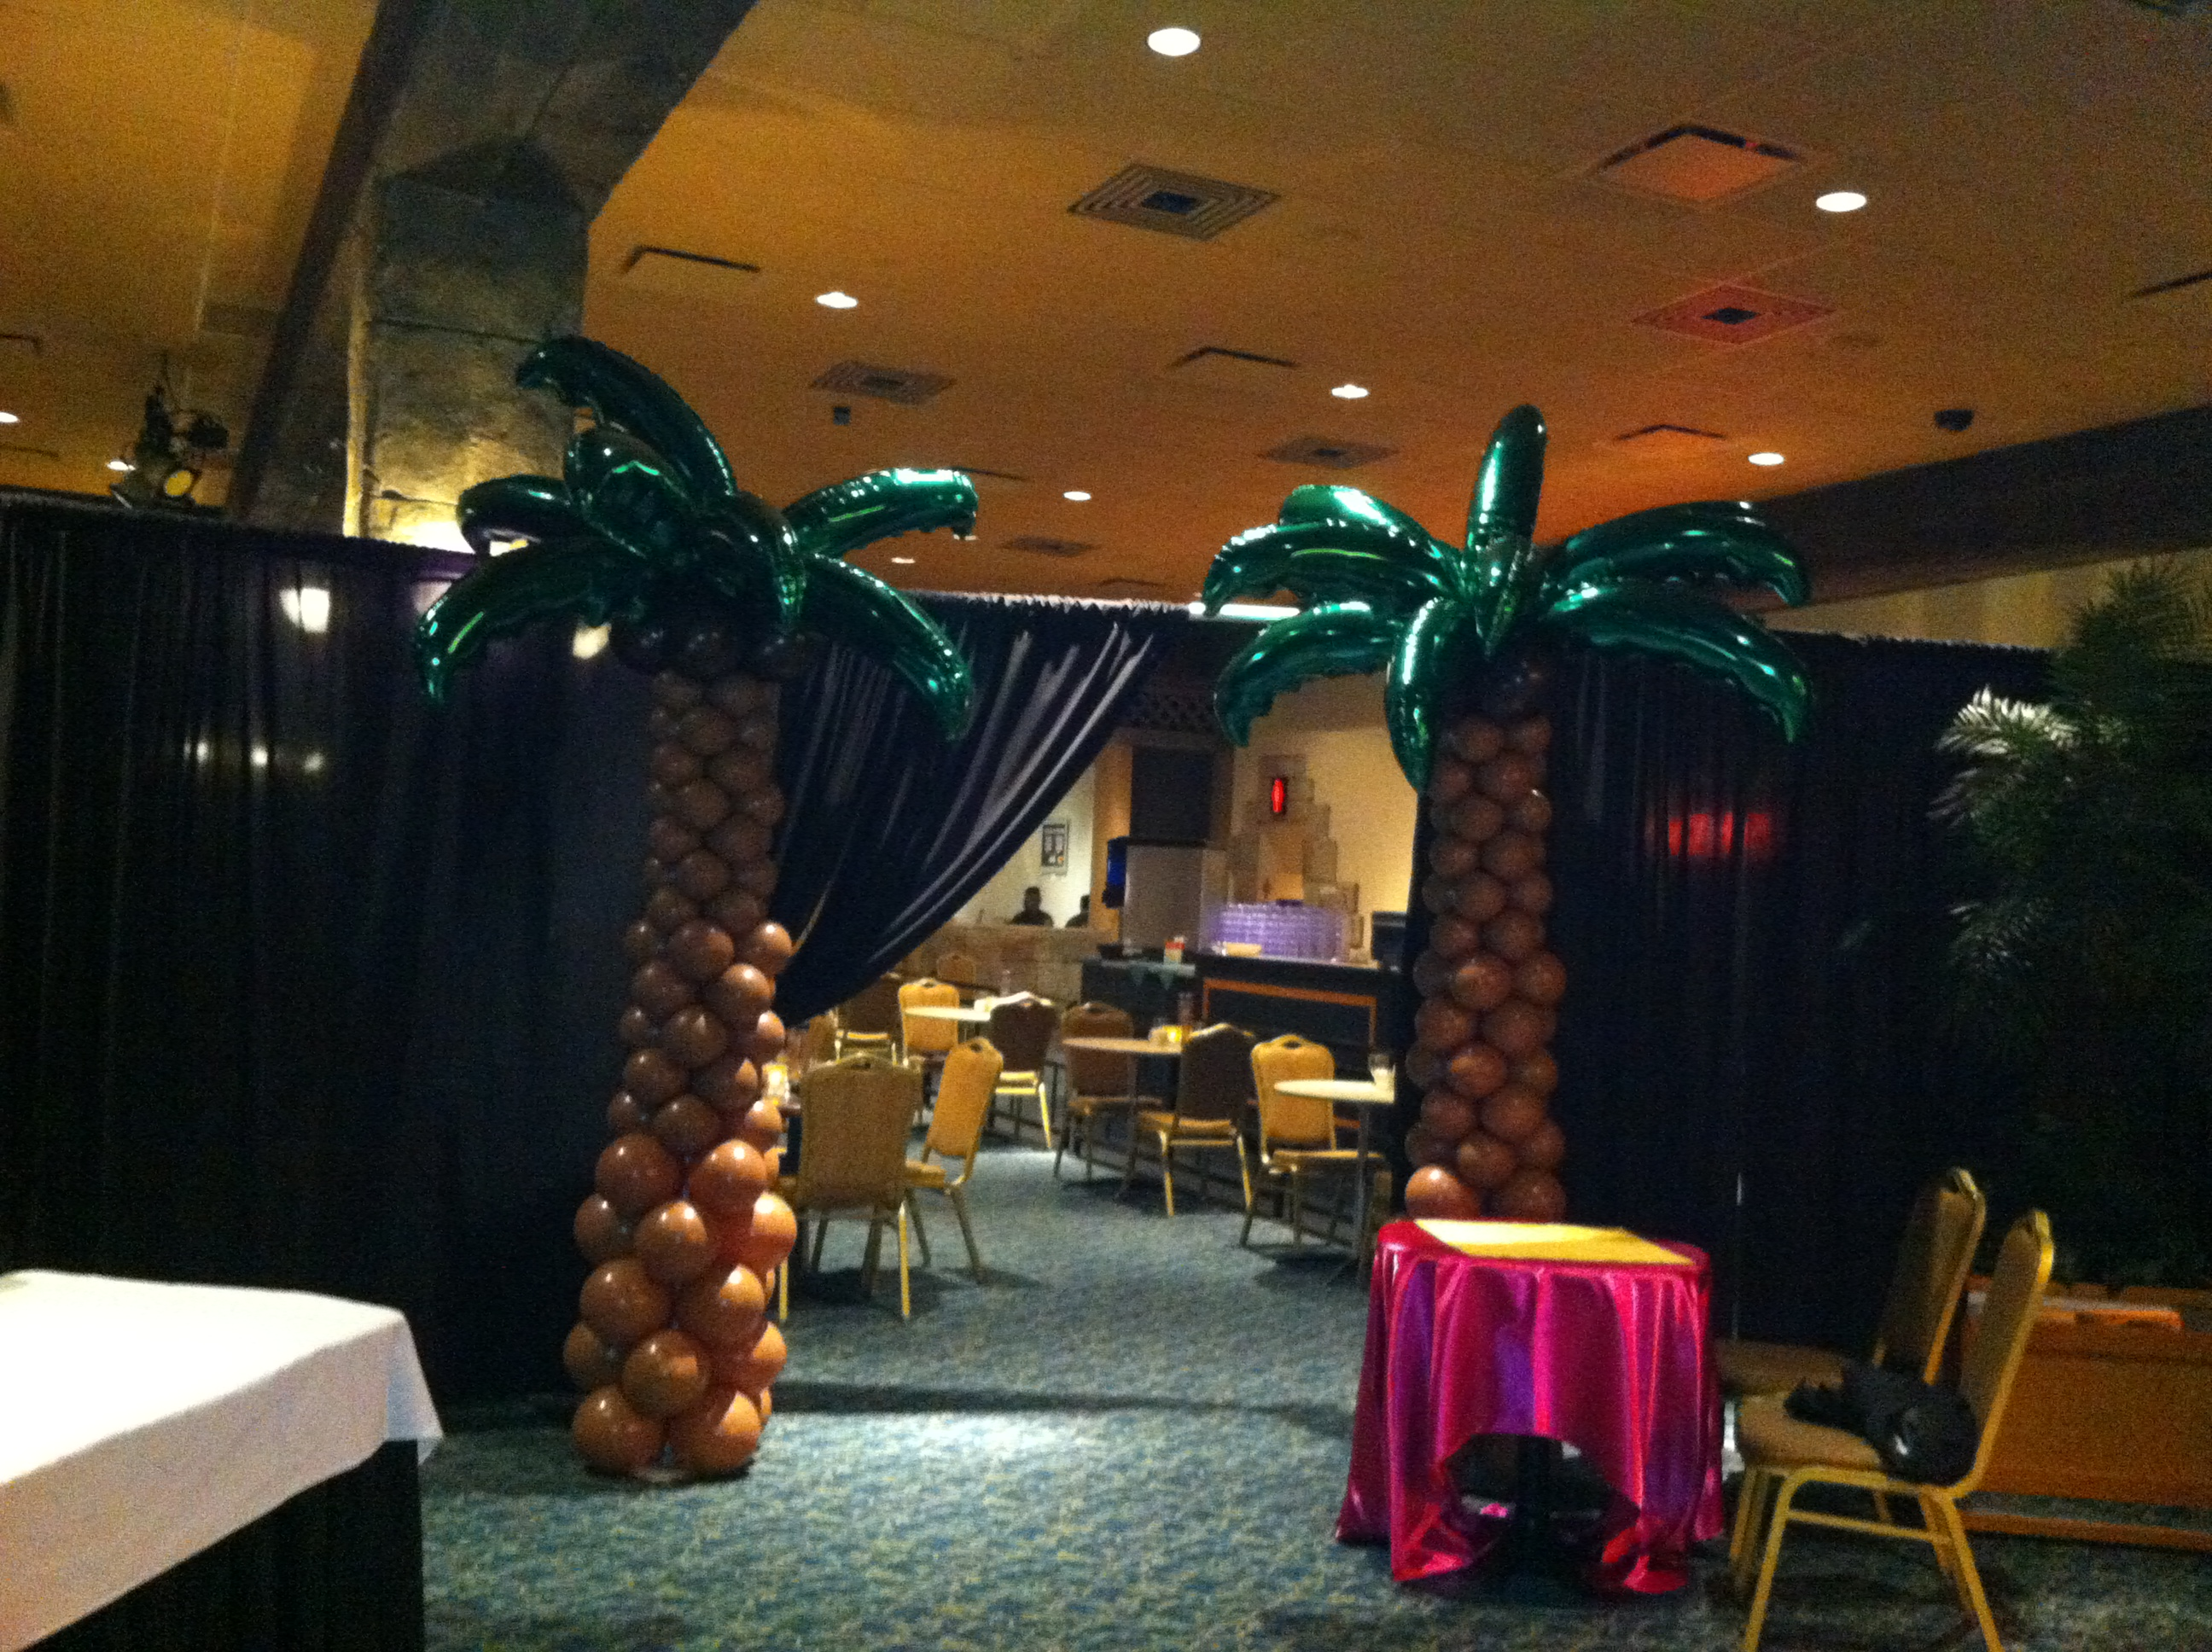 Palm Tree Balloon Sculpture